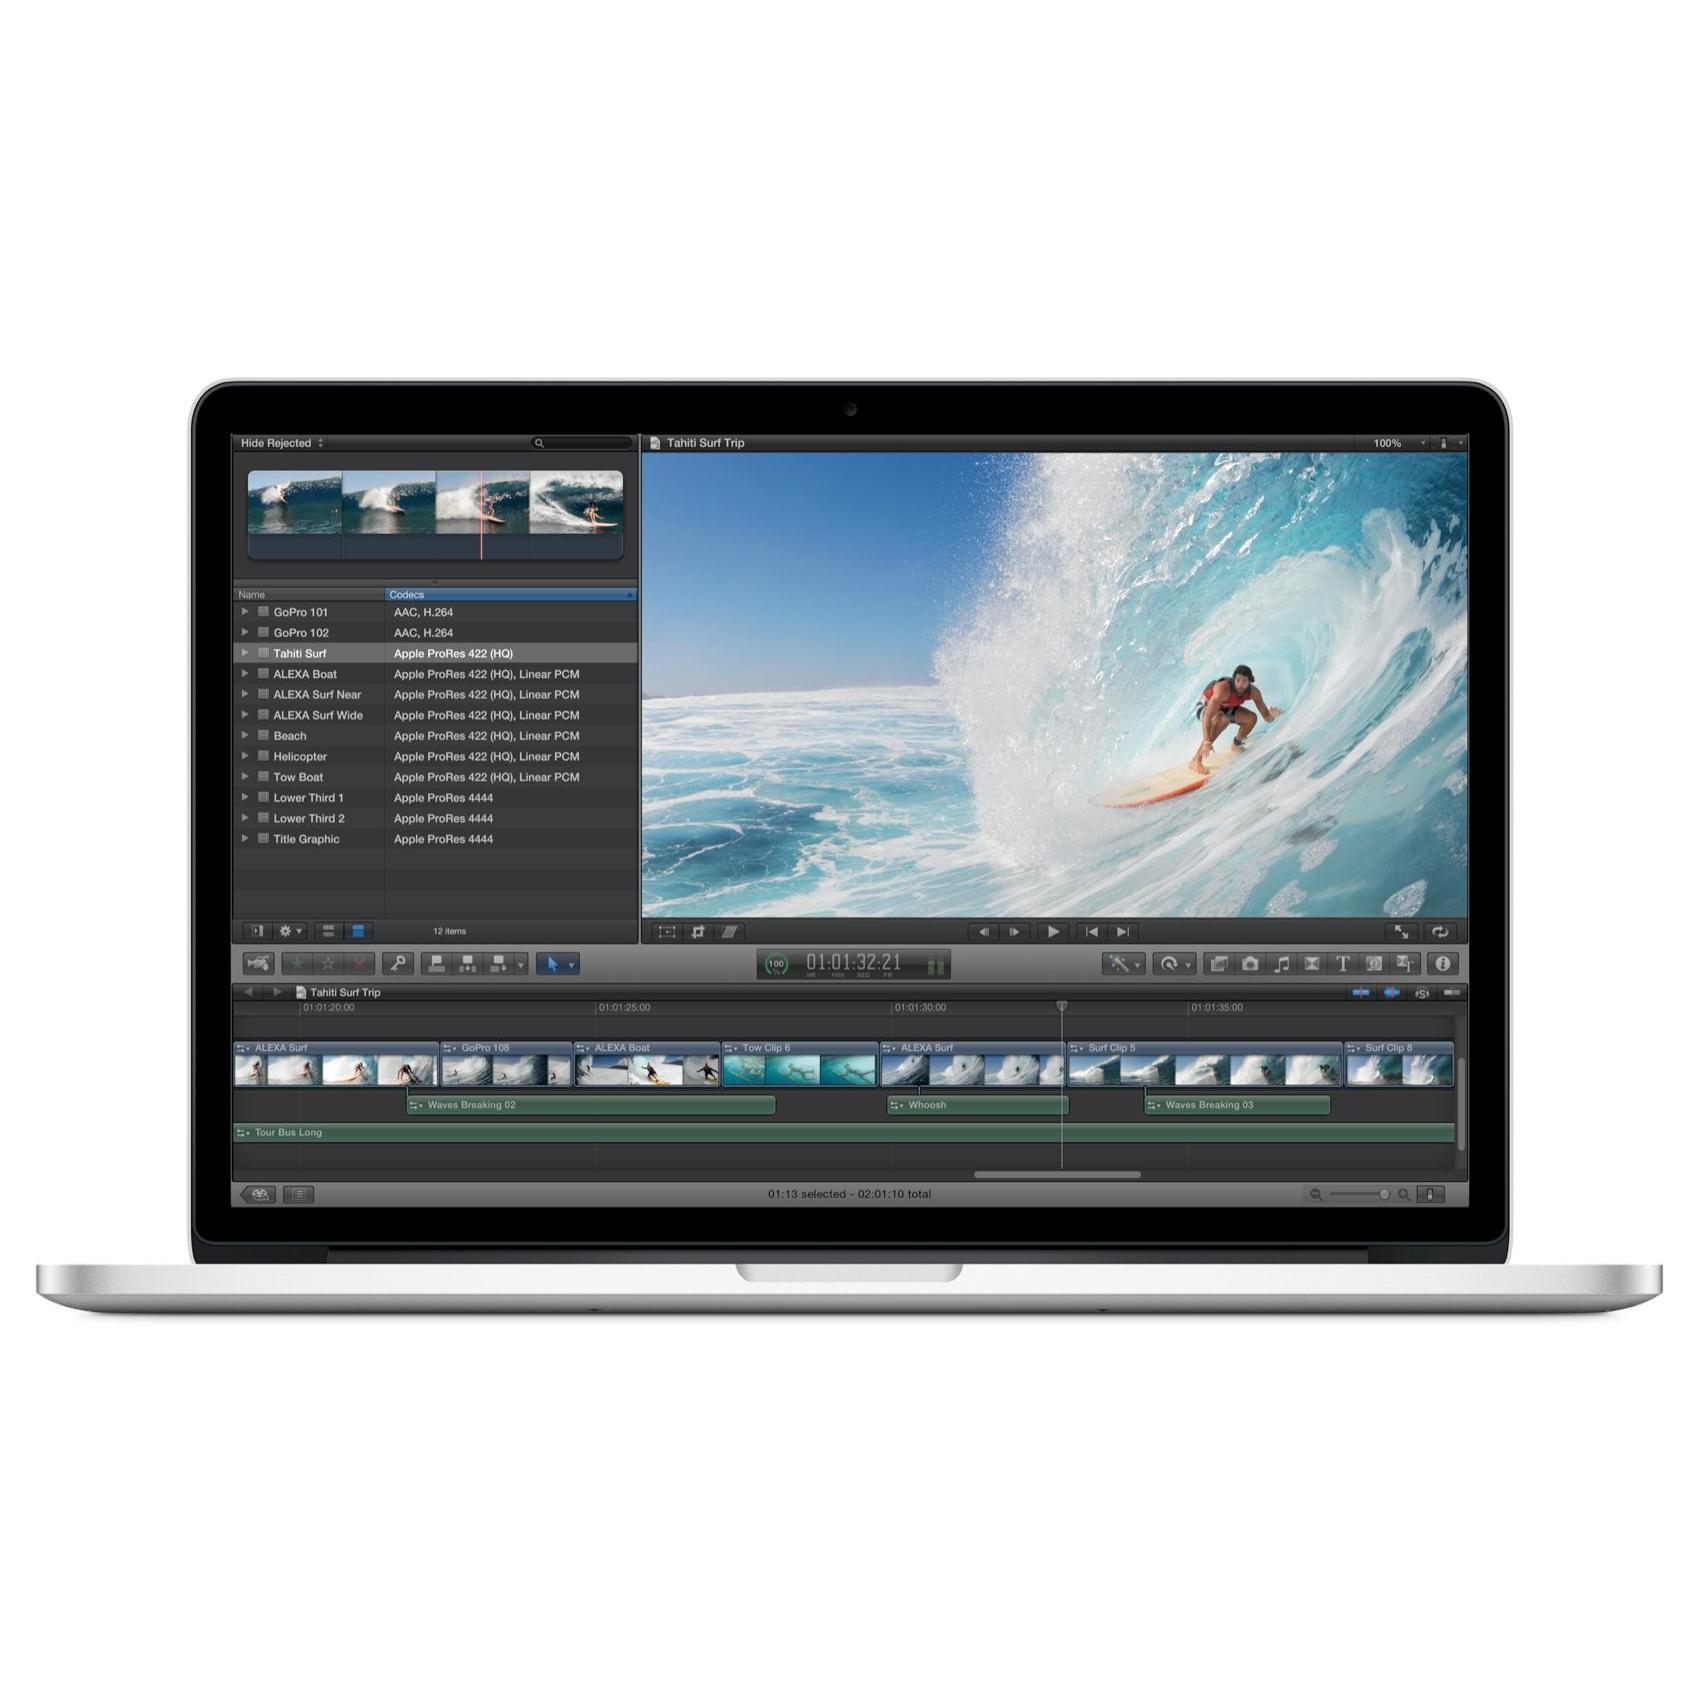 macbook pro 15 core i7 2 3 ghz ssd 256 gb ram 8 gb. Black Bedroom Furniture Sets. Home Design Ideas